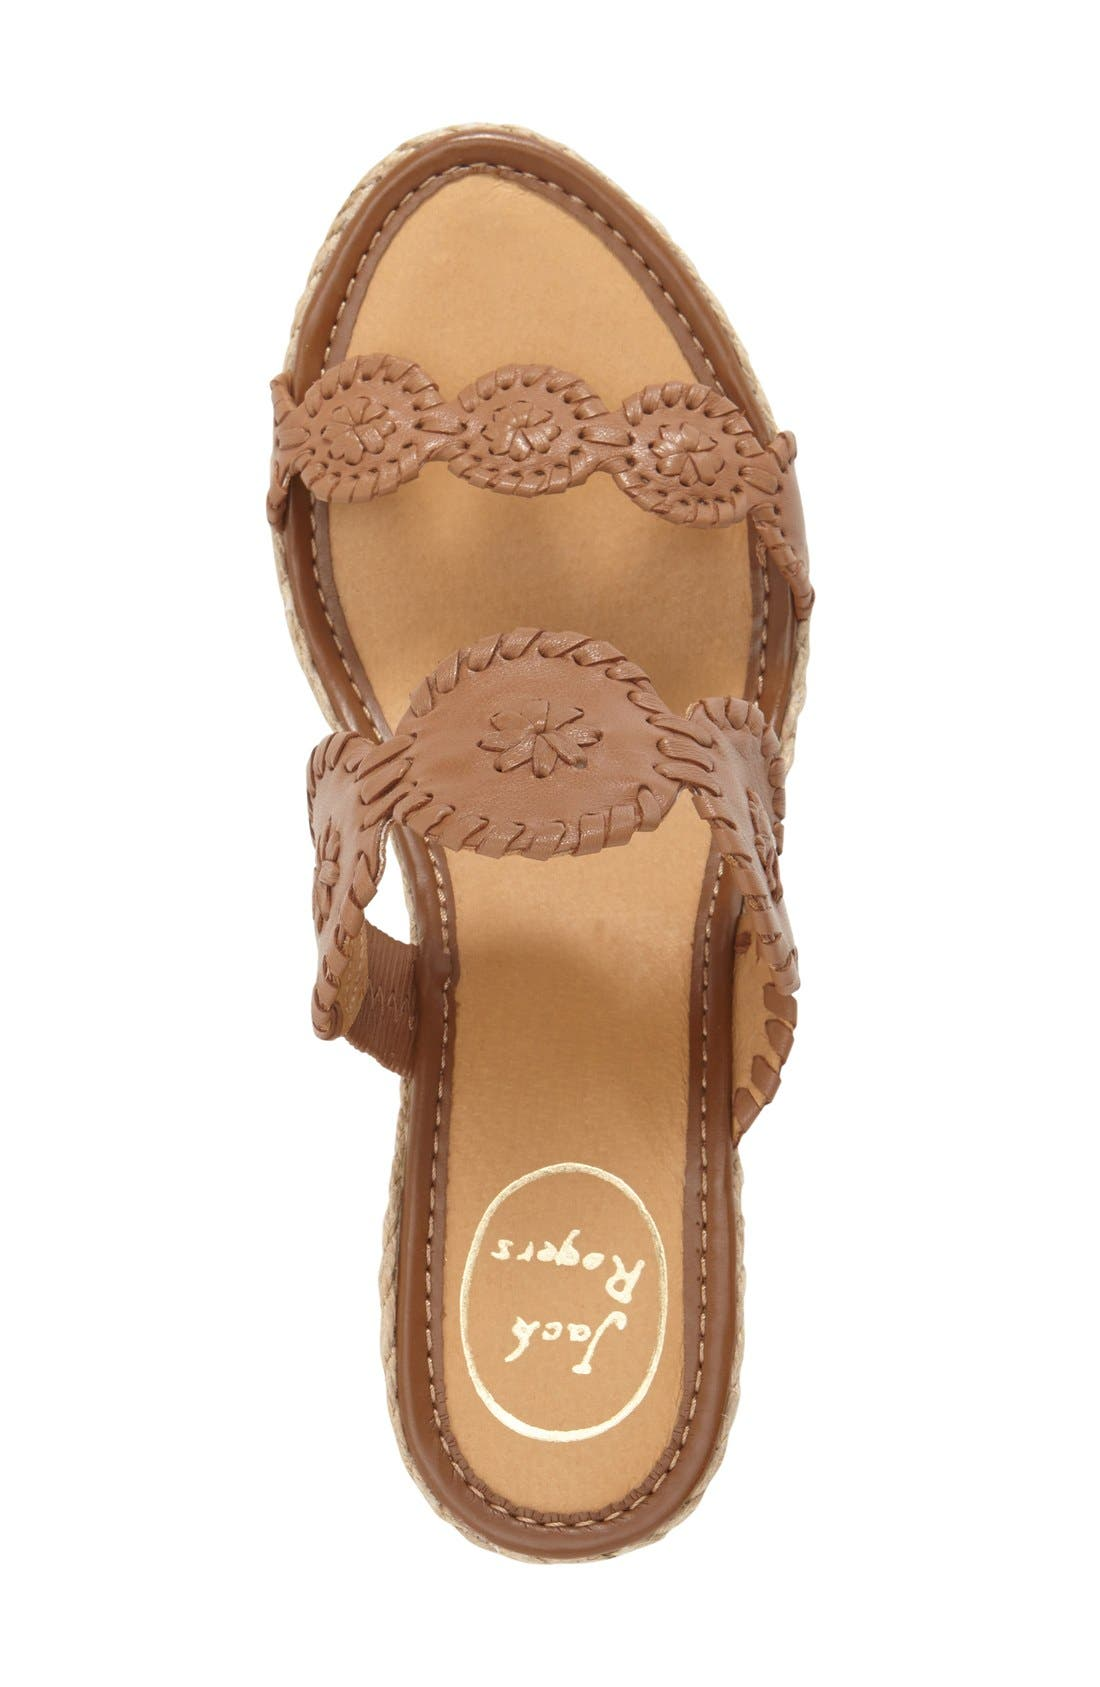 'Shelby' Whipstitched Wedge Sandal,                             Alternate thumbnail 3, color,                             COGNAC